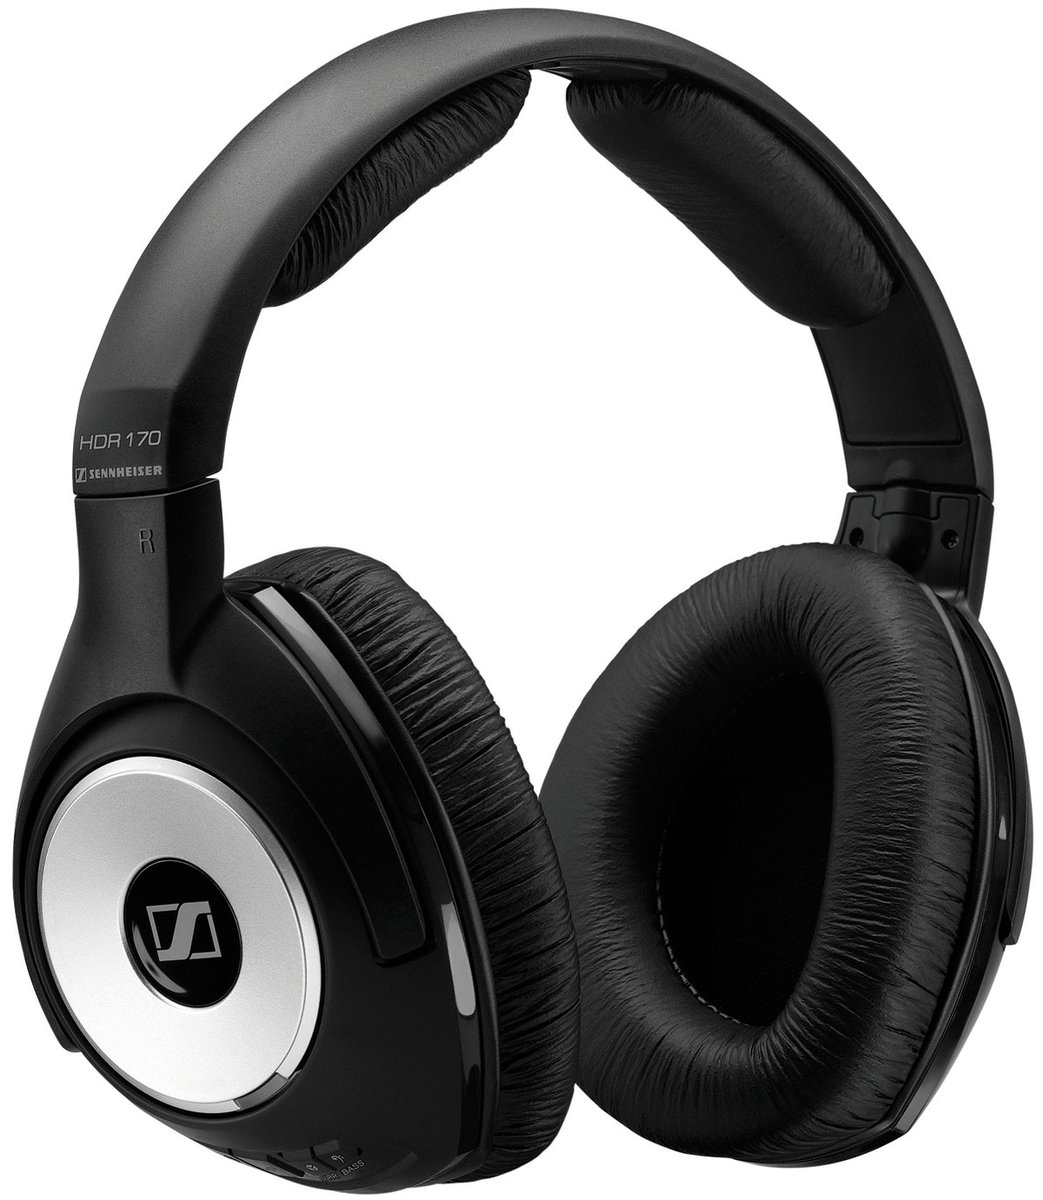 sennheiser hdr 170 casques sans fil son vid. Black Bedroom Furniture Sets. Home Design Ideas